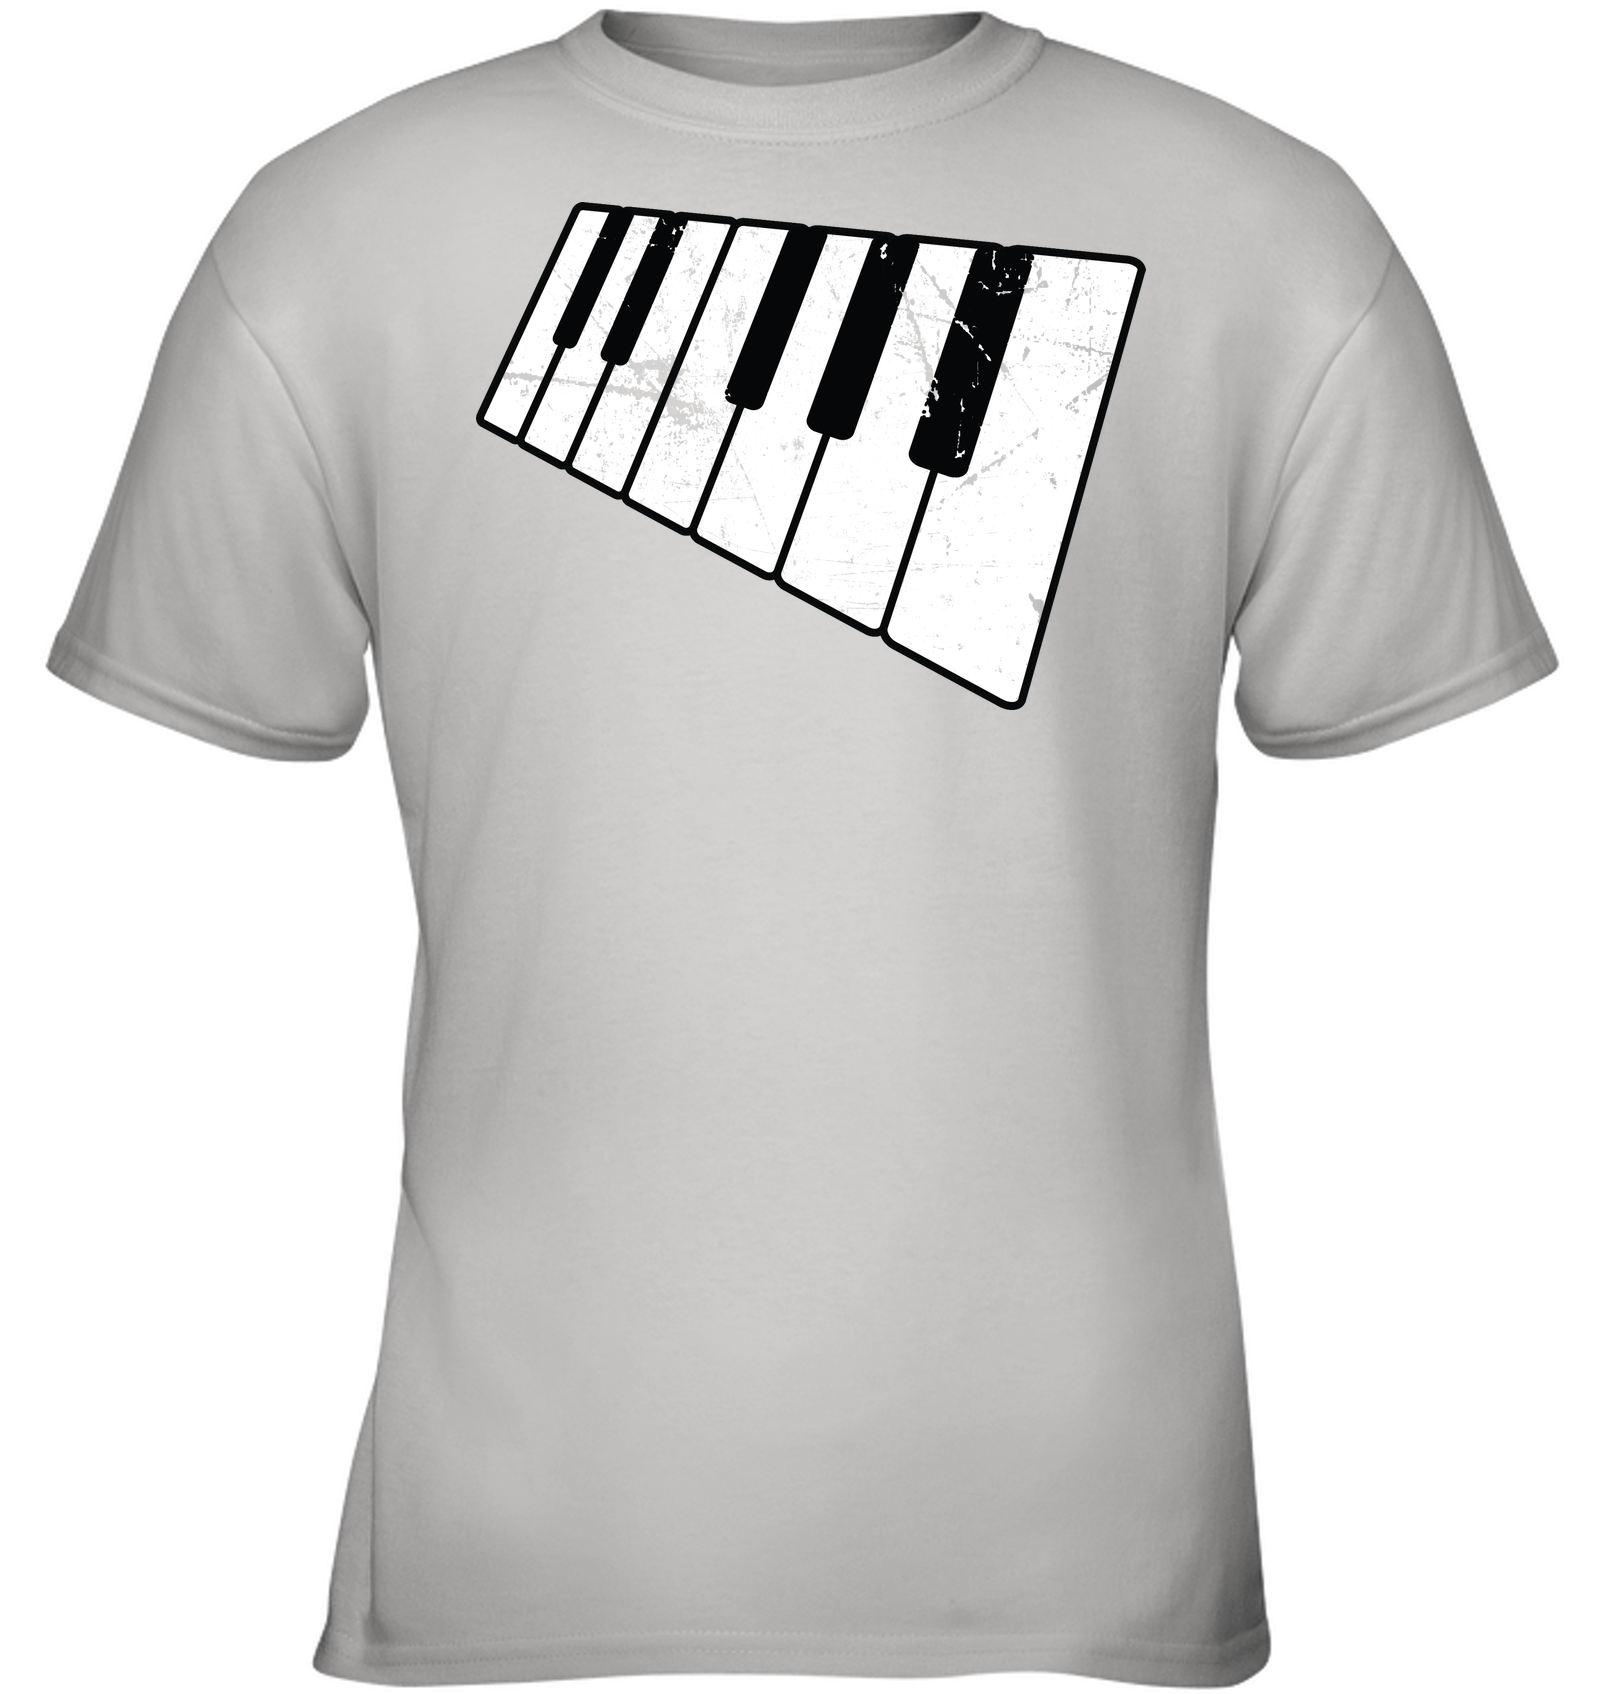 Floating Piano Keyboard - Gildan Youth Short Sleeve T-Shirt